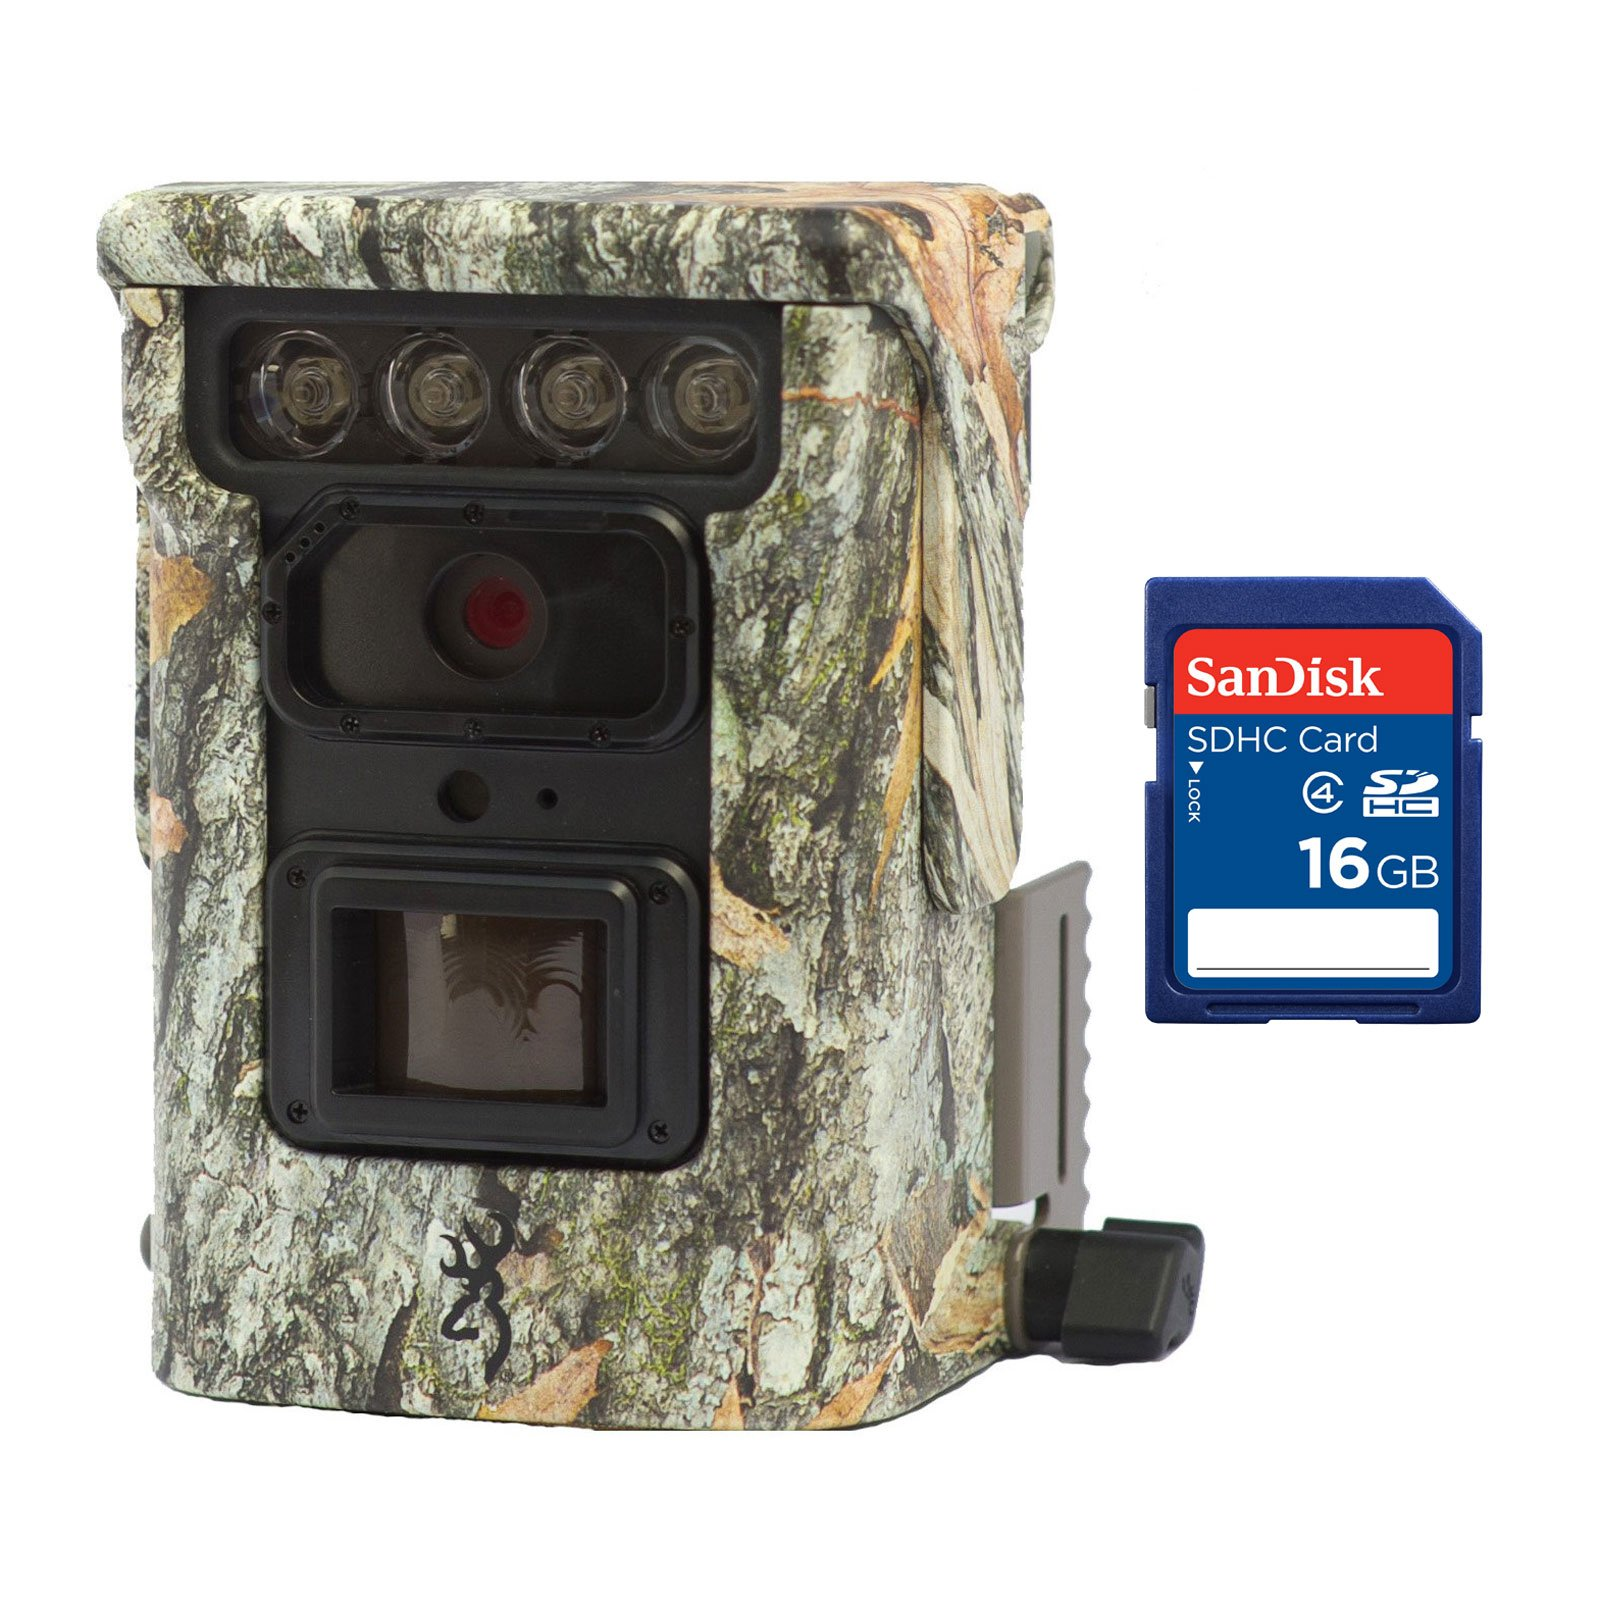 Moultrie Browning Trail Cameras Defender 850 20MP Bluetooth IR Game Camera + 16GB SD Card by Moultrie (Image #1)